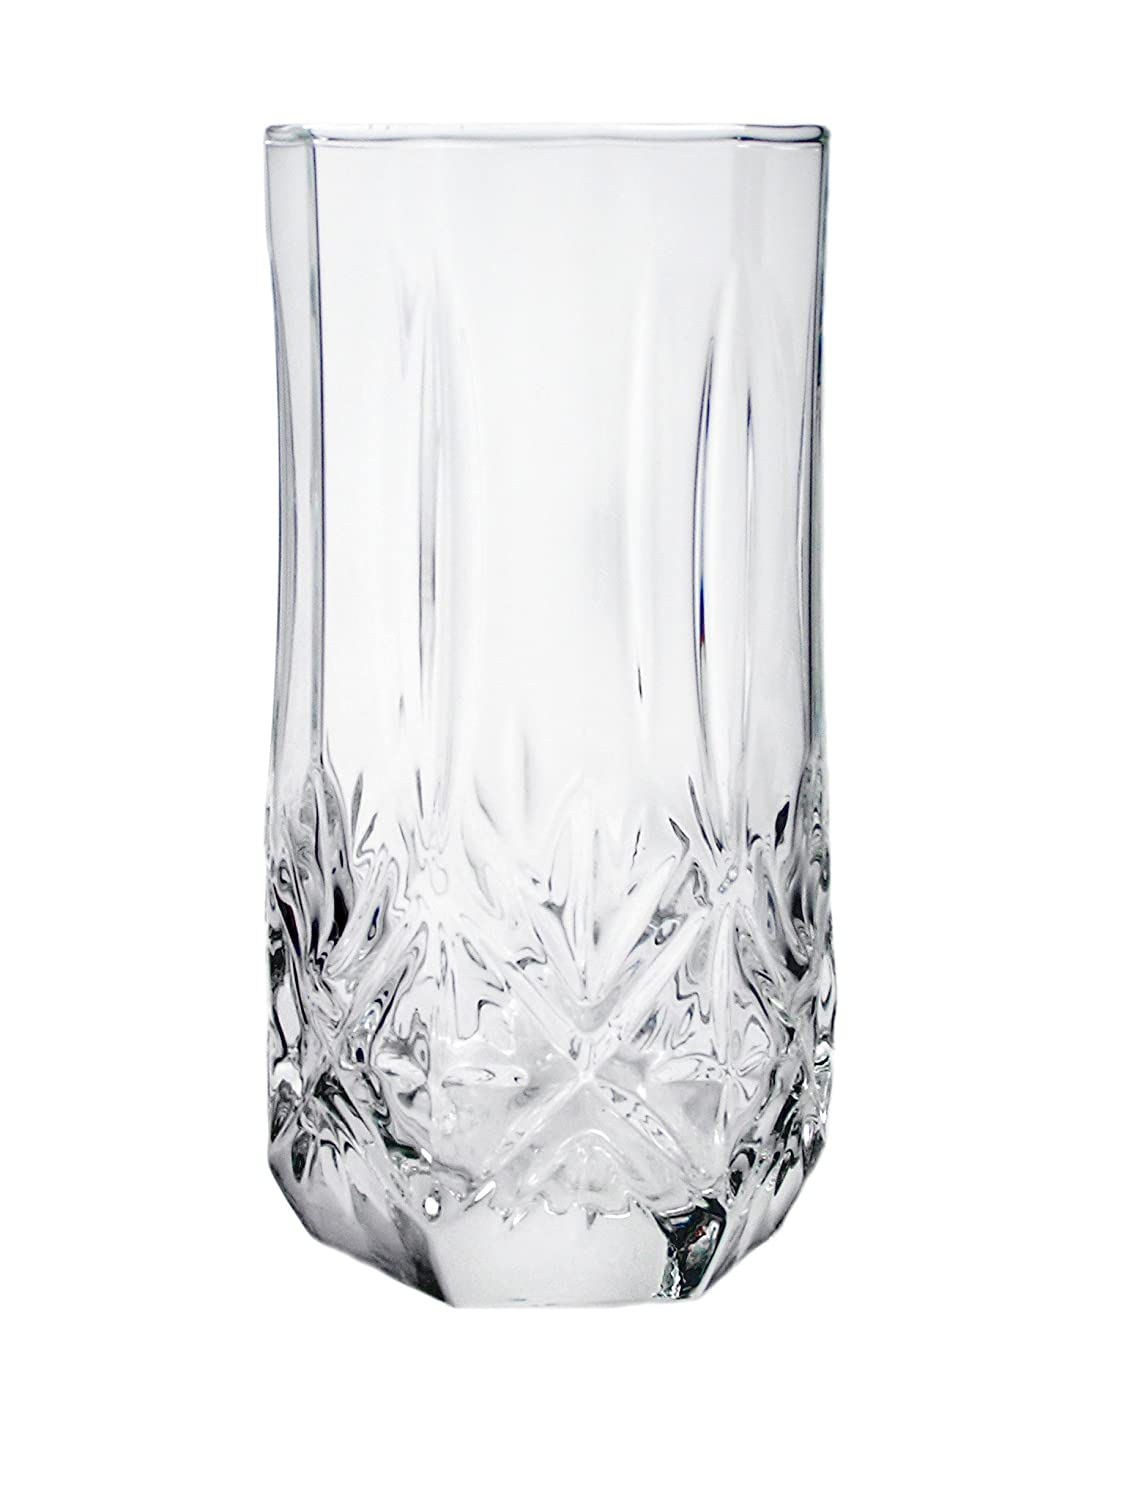 ARC International Luminarc Brighton Cooler Glass, 15.75-Ounce, Set of 4 N4623